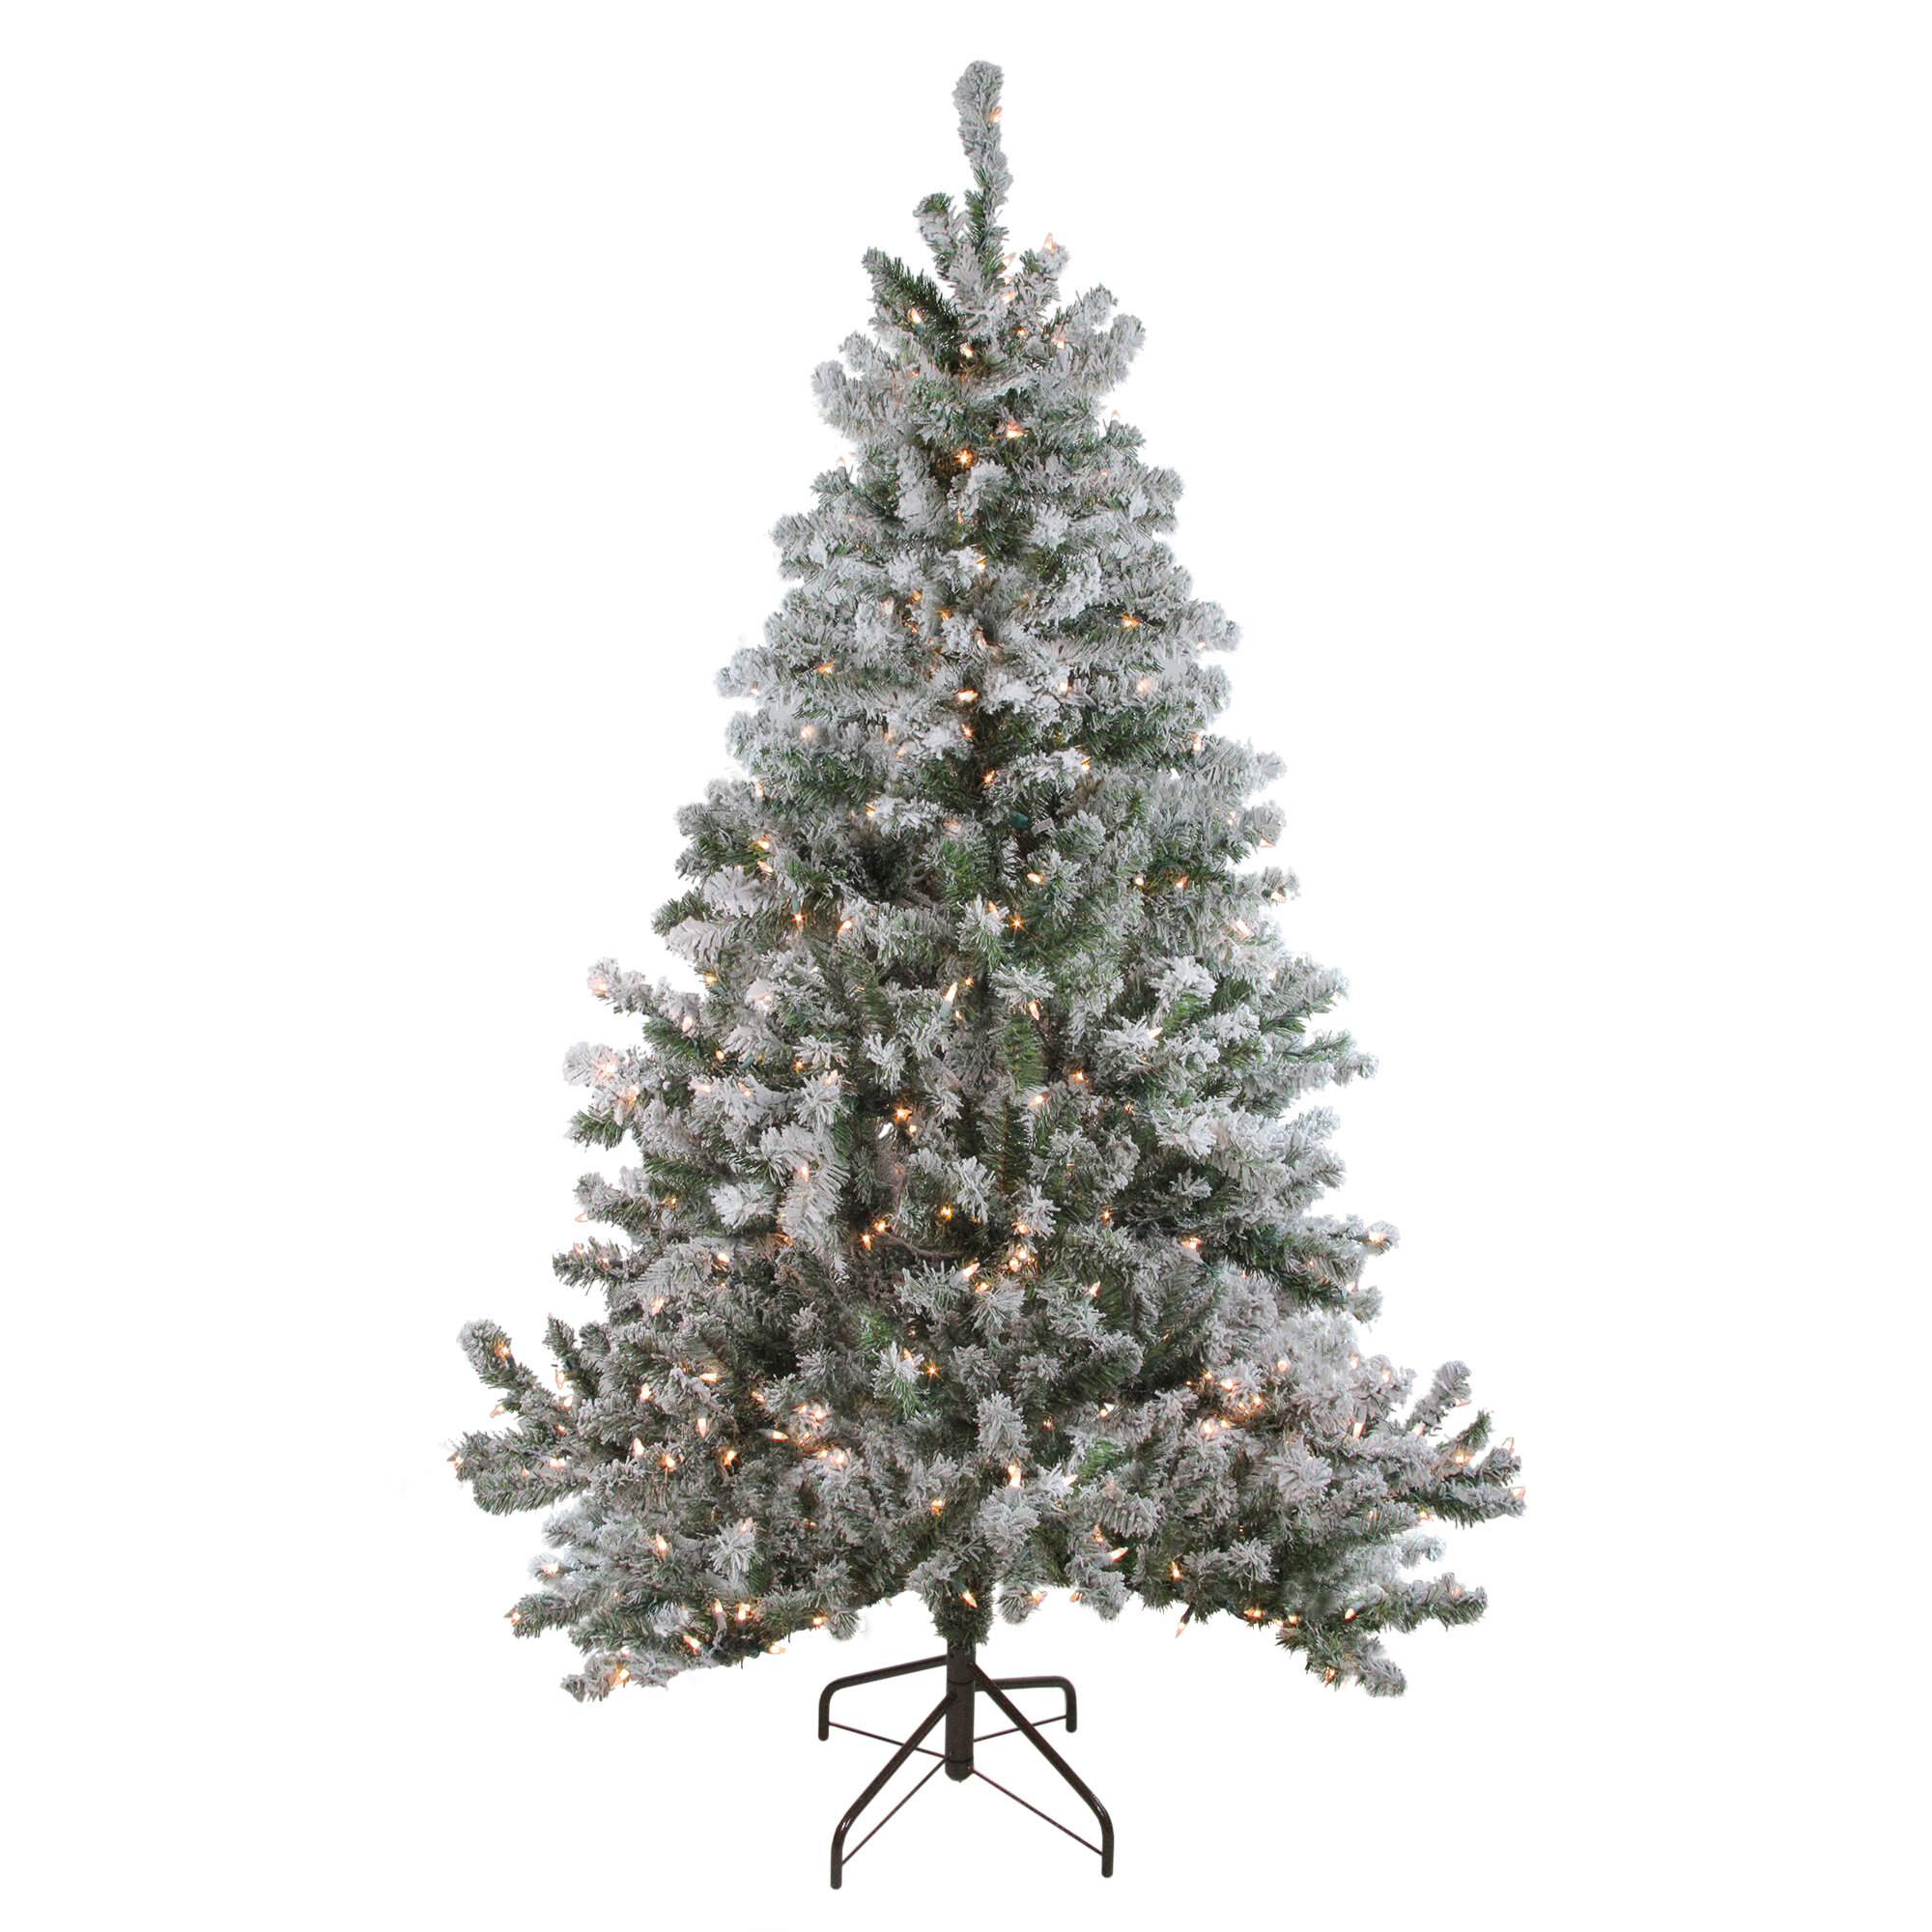 Balsam Christmas Trees.Pre Lit Flocked Balsam Green Pine Artificial Christmas Tree With 500 Clear Lights